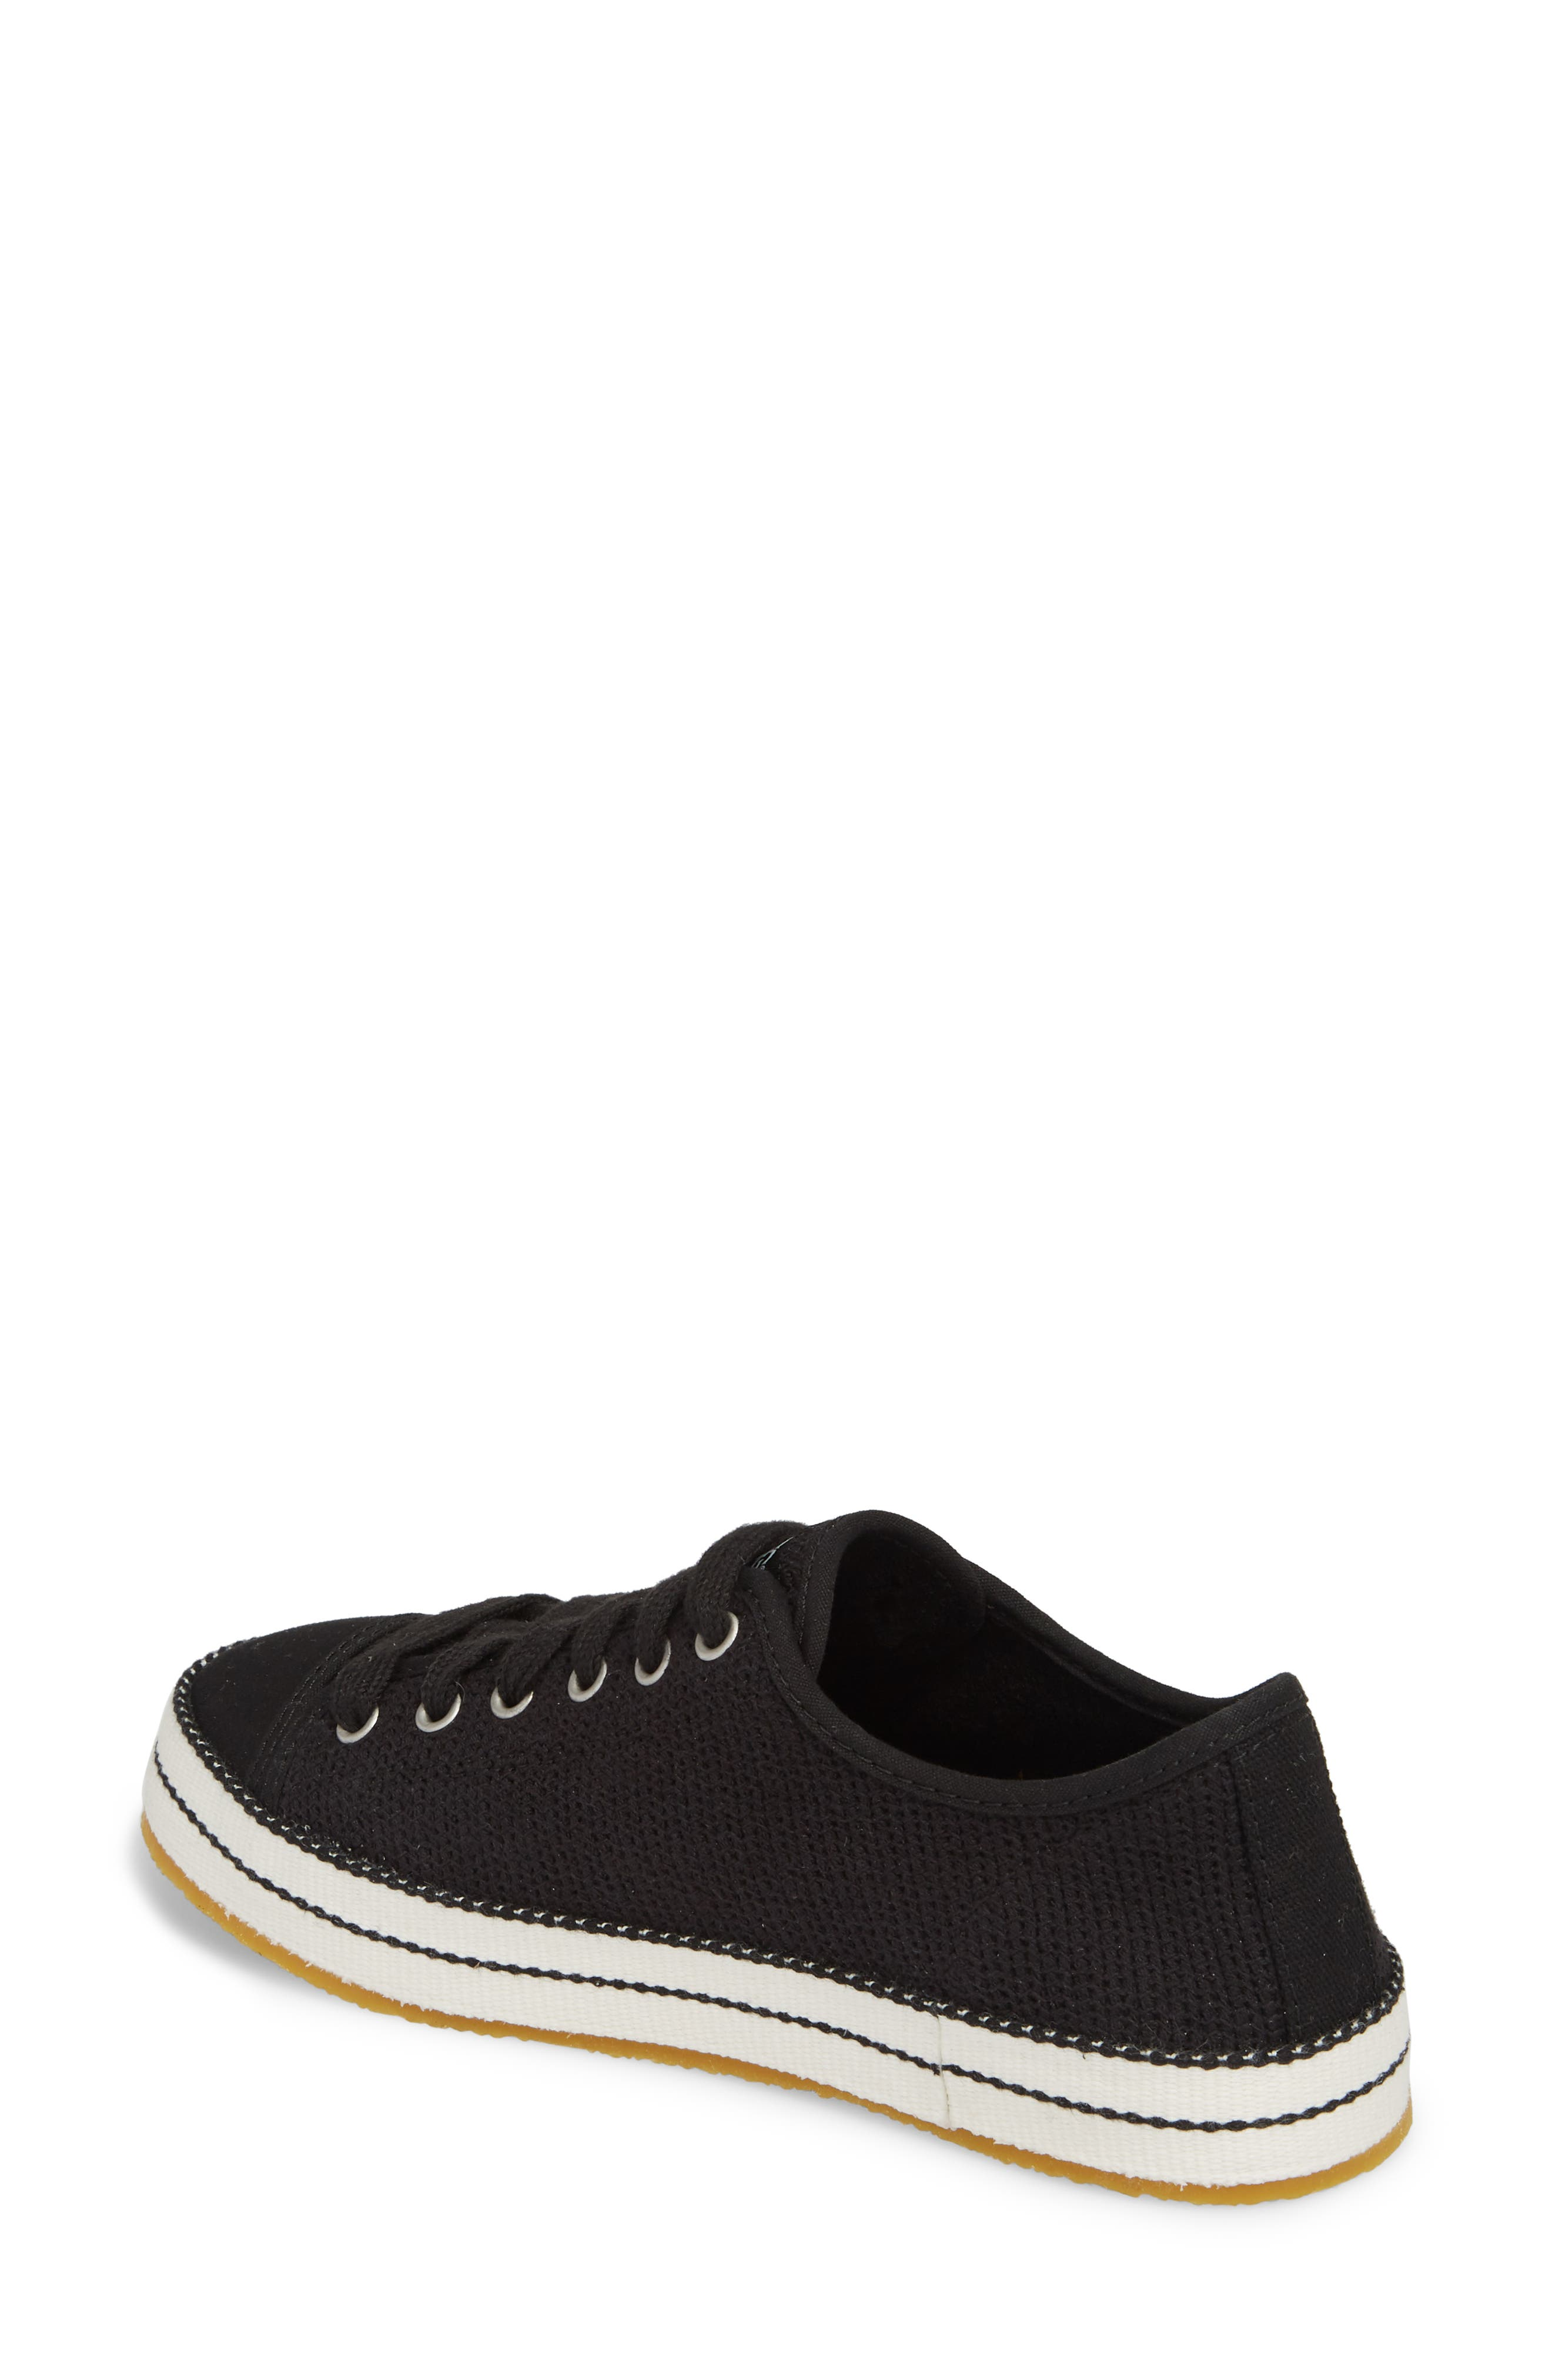 UGG<SUP>®</SUP>, Claudi Sneaker, Alternate thumbnail 2, color, BLACK